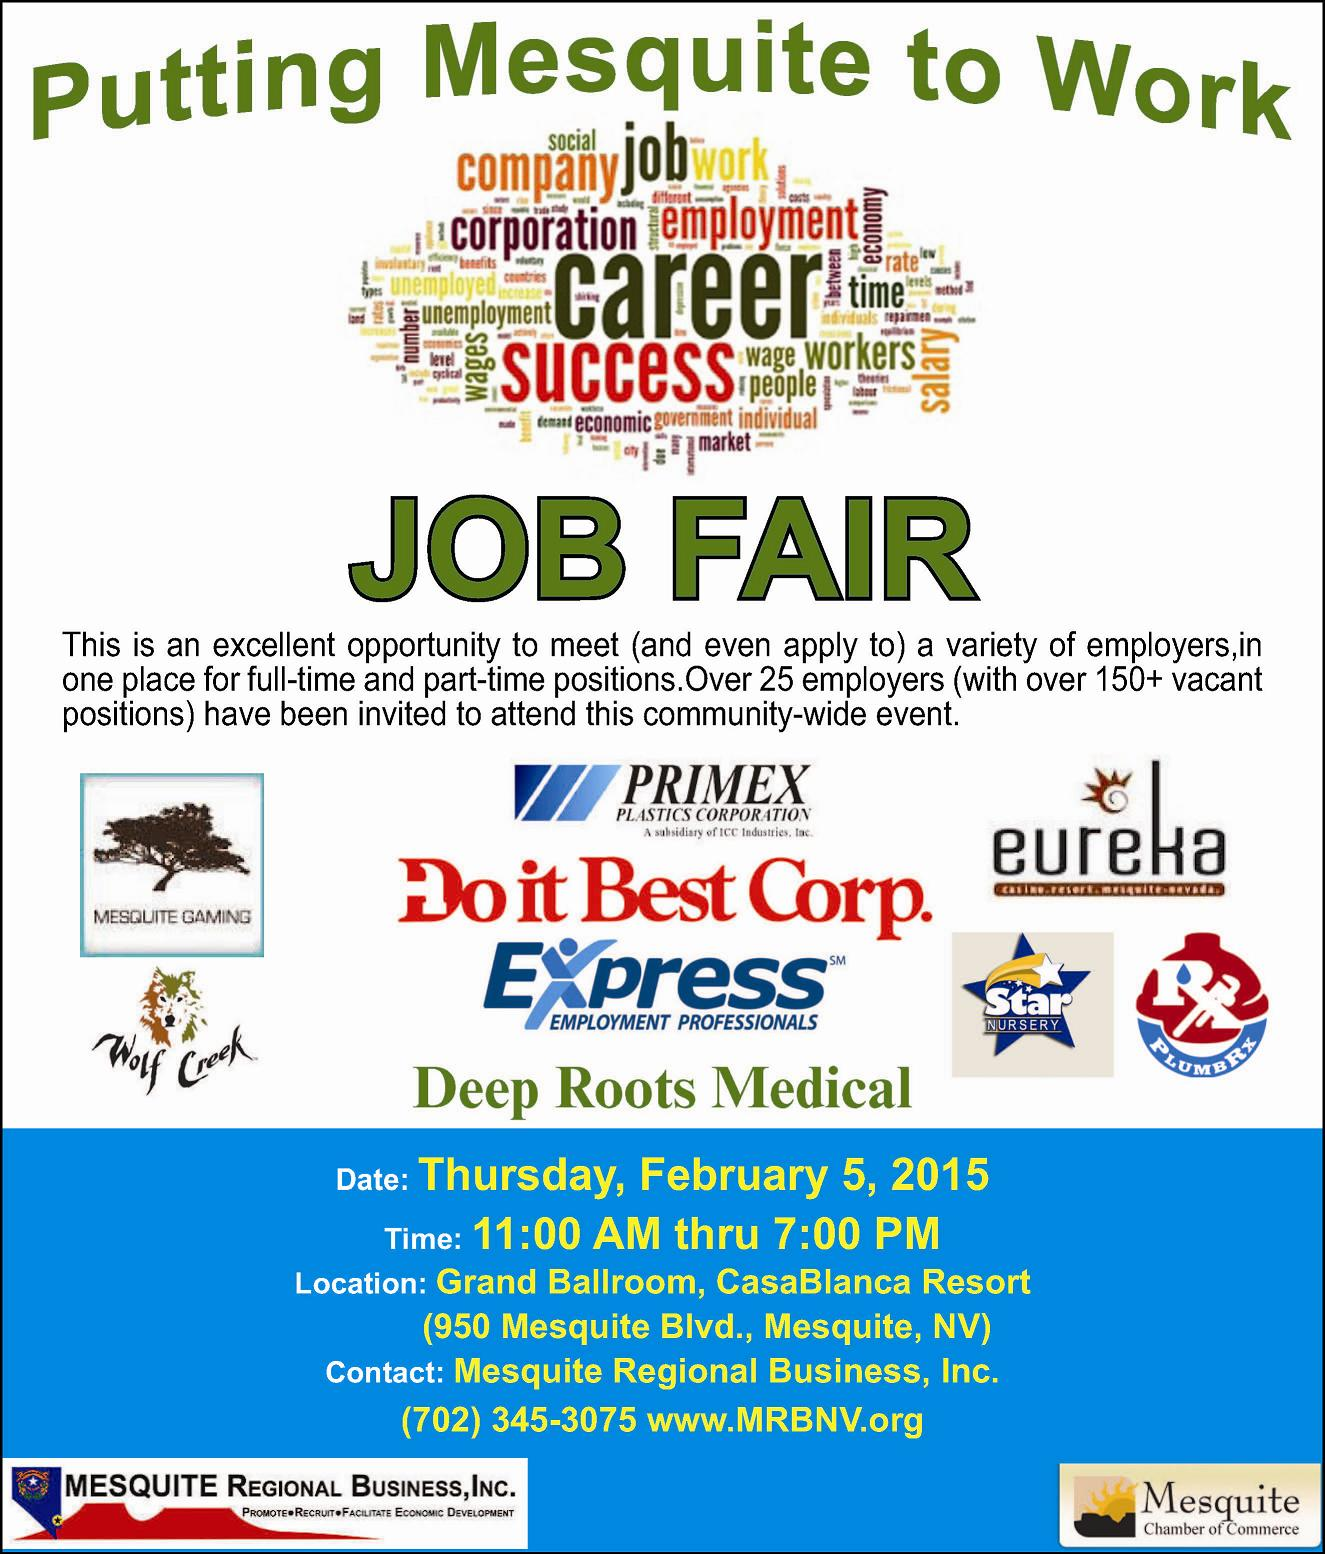 Job Fair at CasaBlanca TODAY!